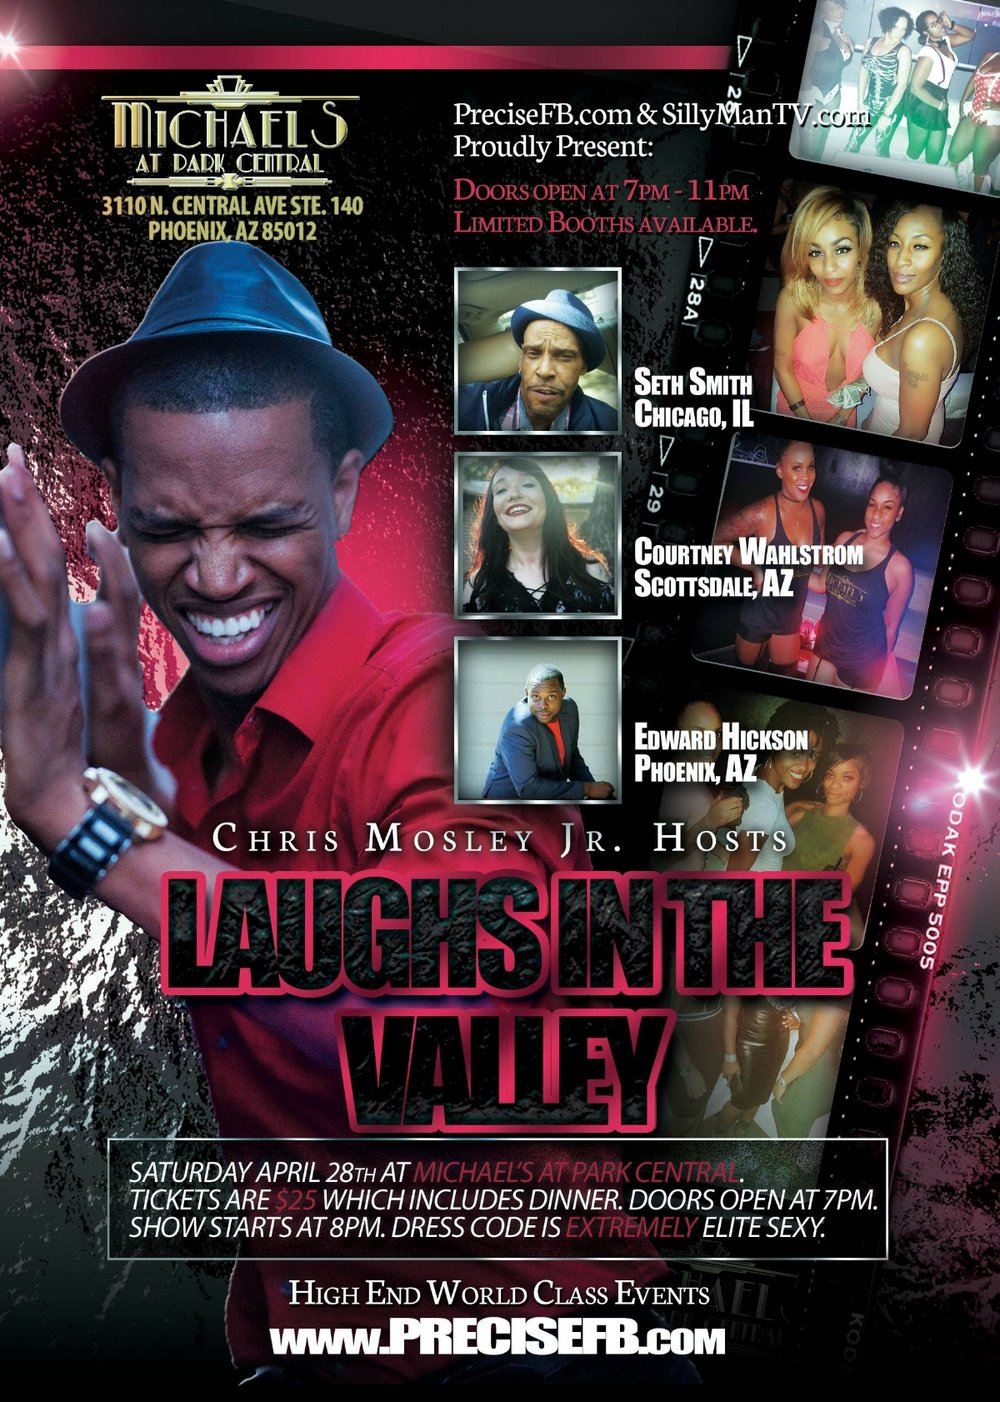 chris-mosley-jr-laughs-in-the-valley-april-28.jpg